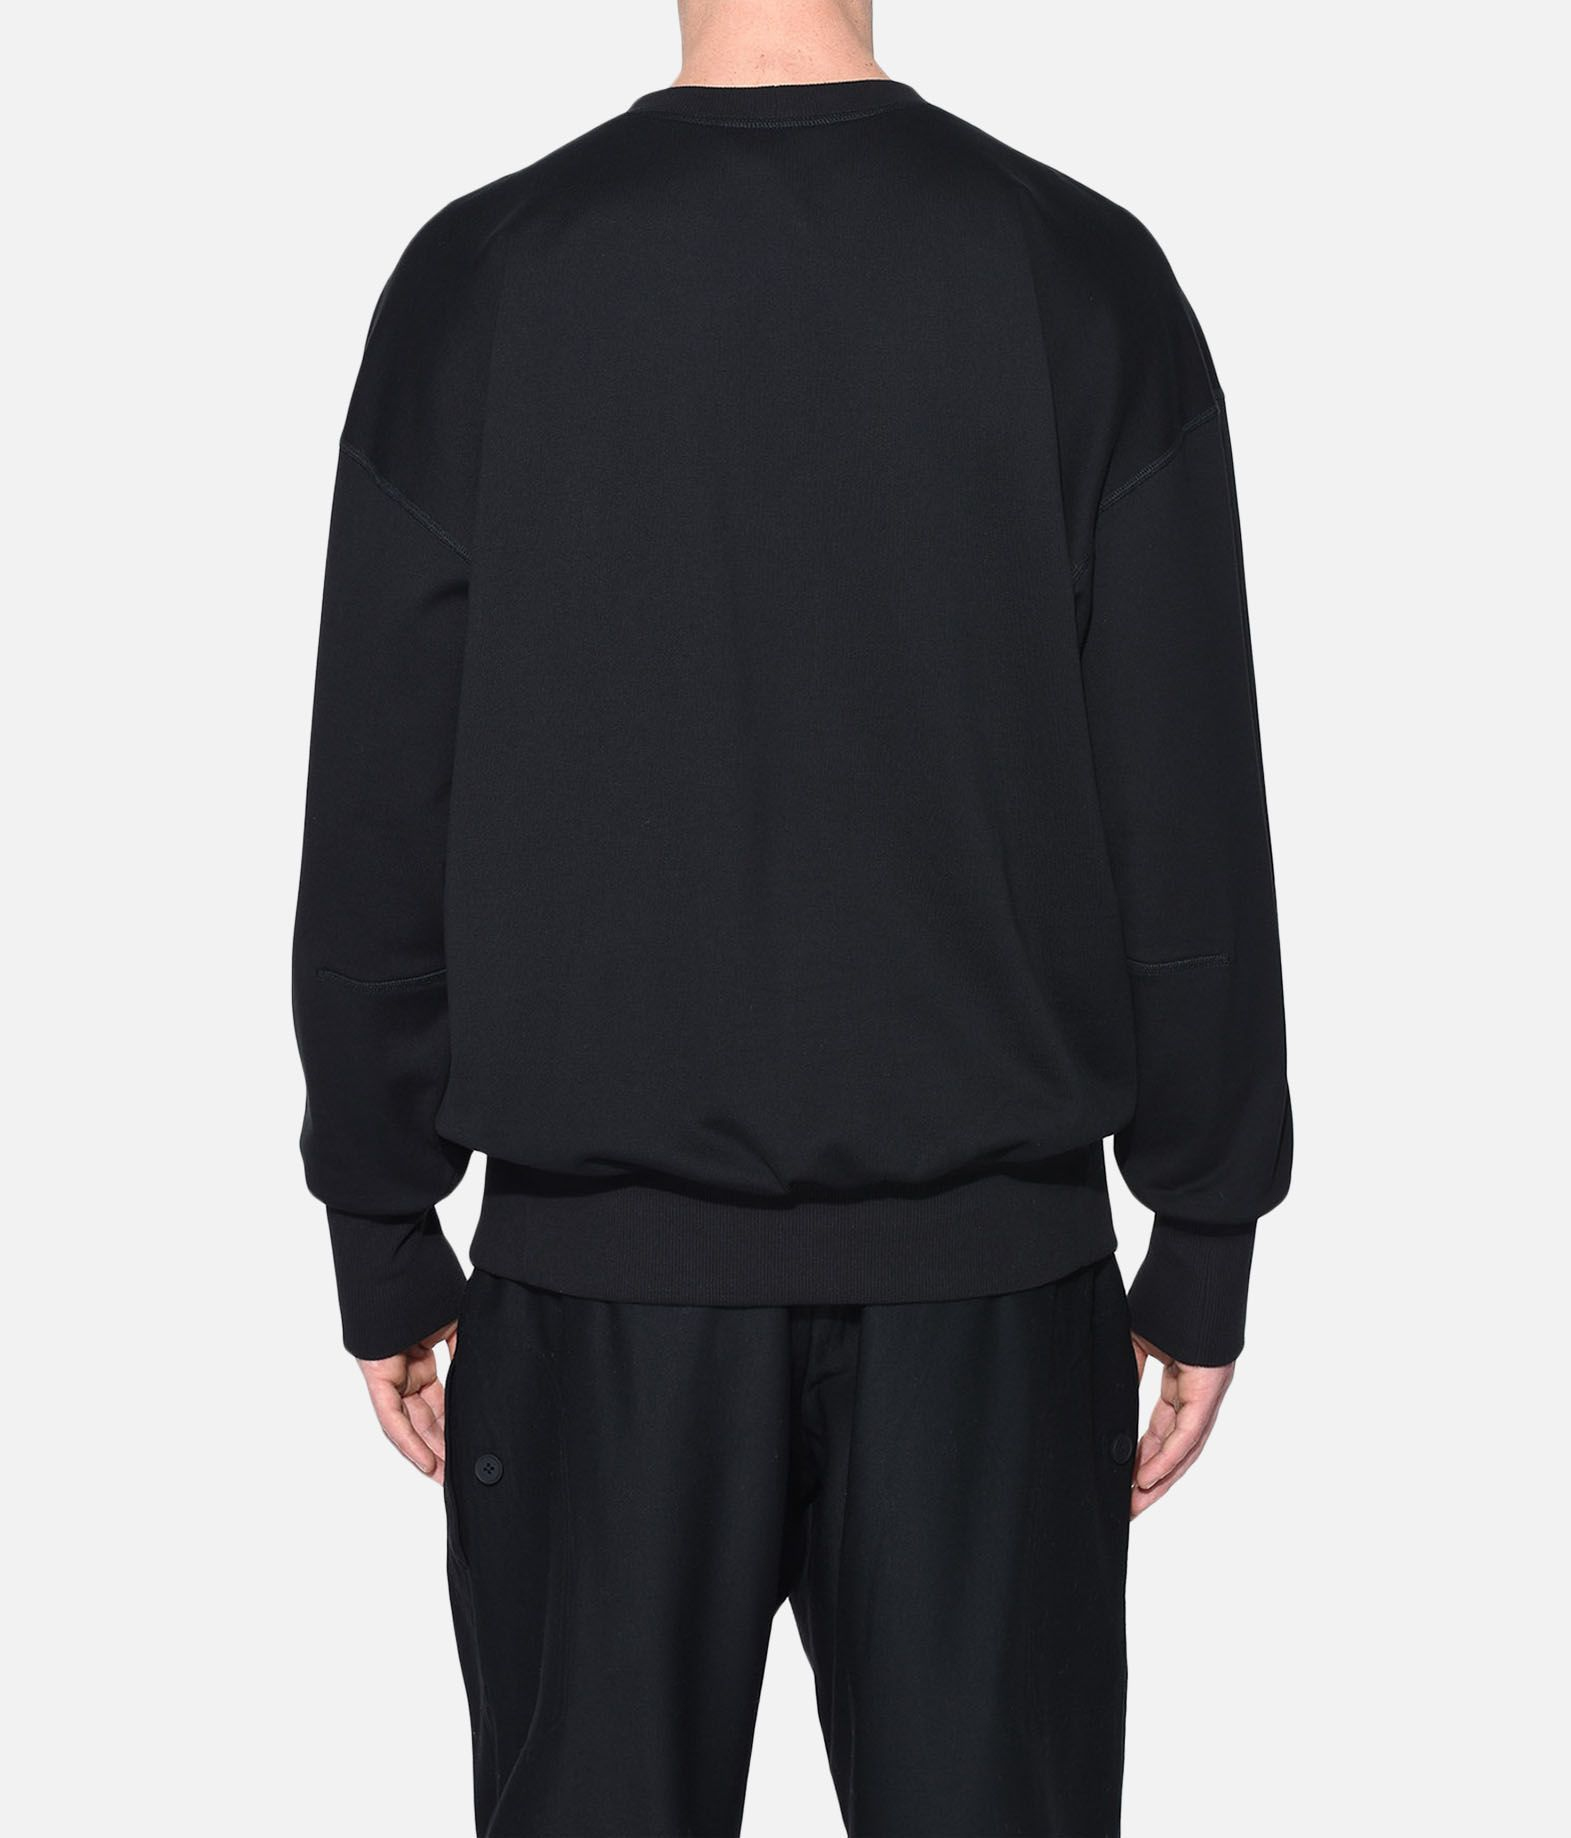 Y-3 Y-3 Sashiko Slogan Sweater スウェット メンズ d